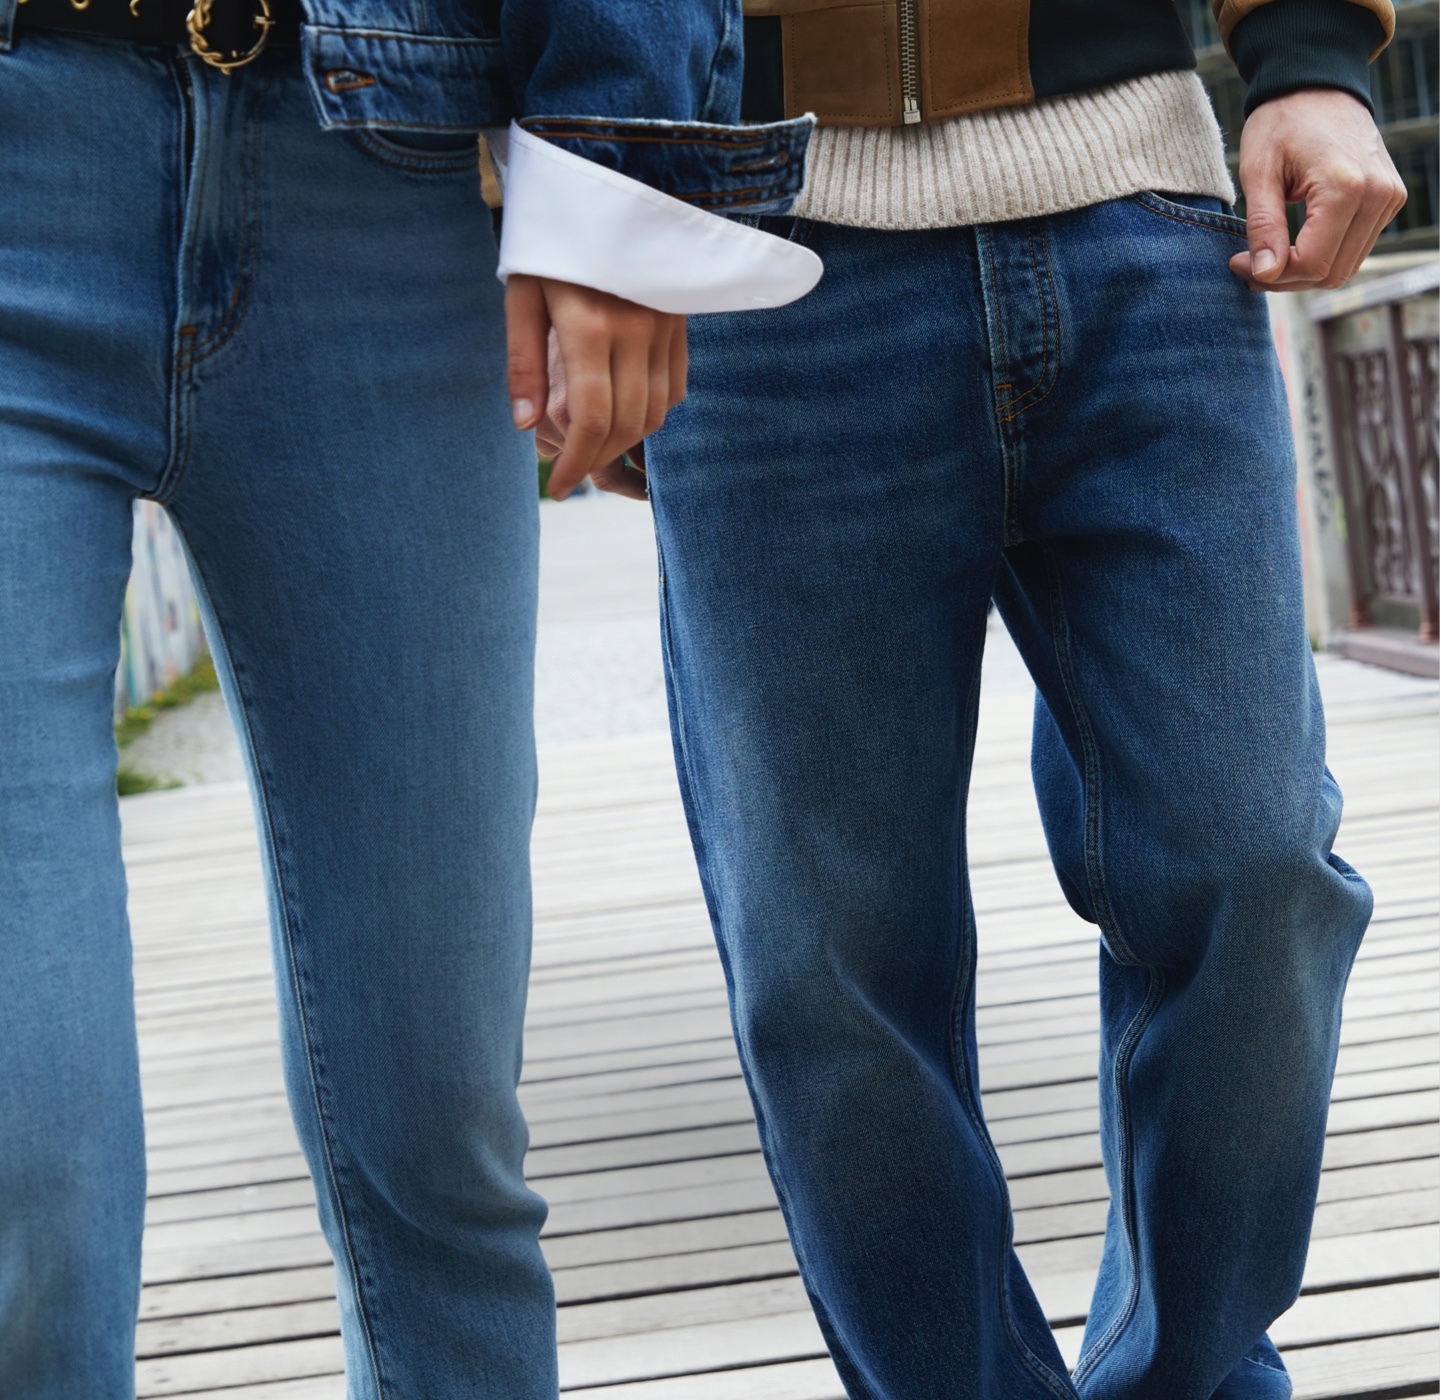 Jeans campaign adults 2021